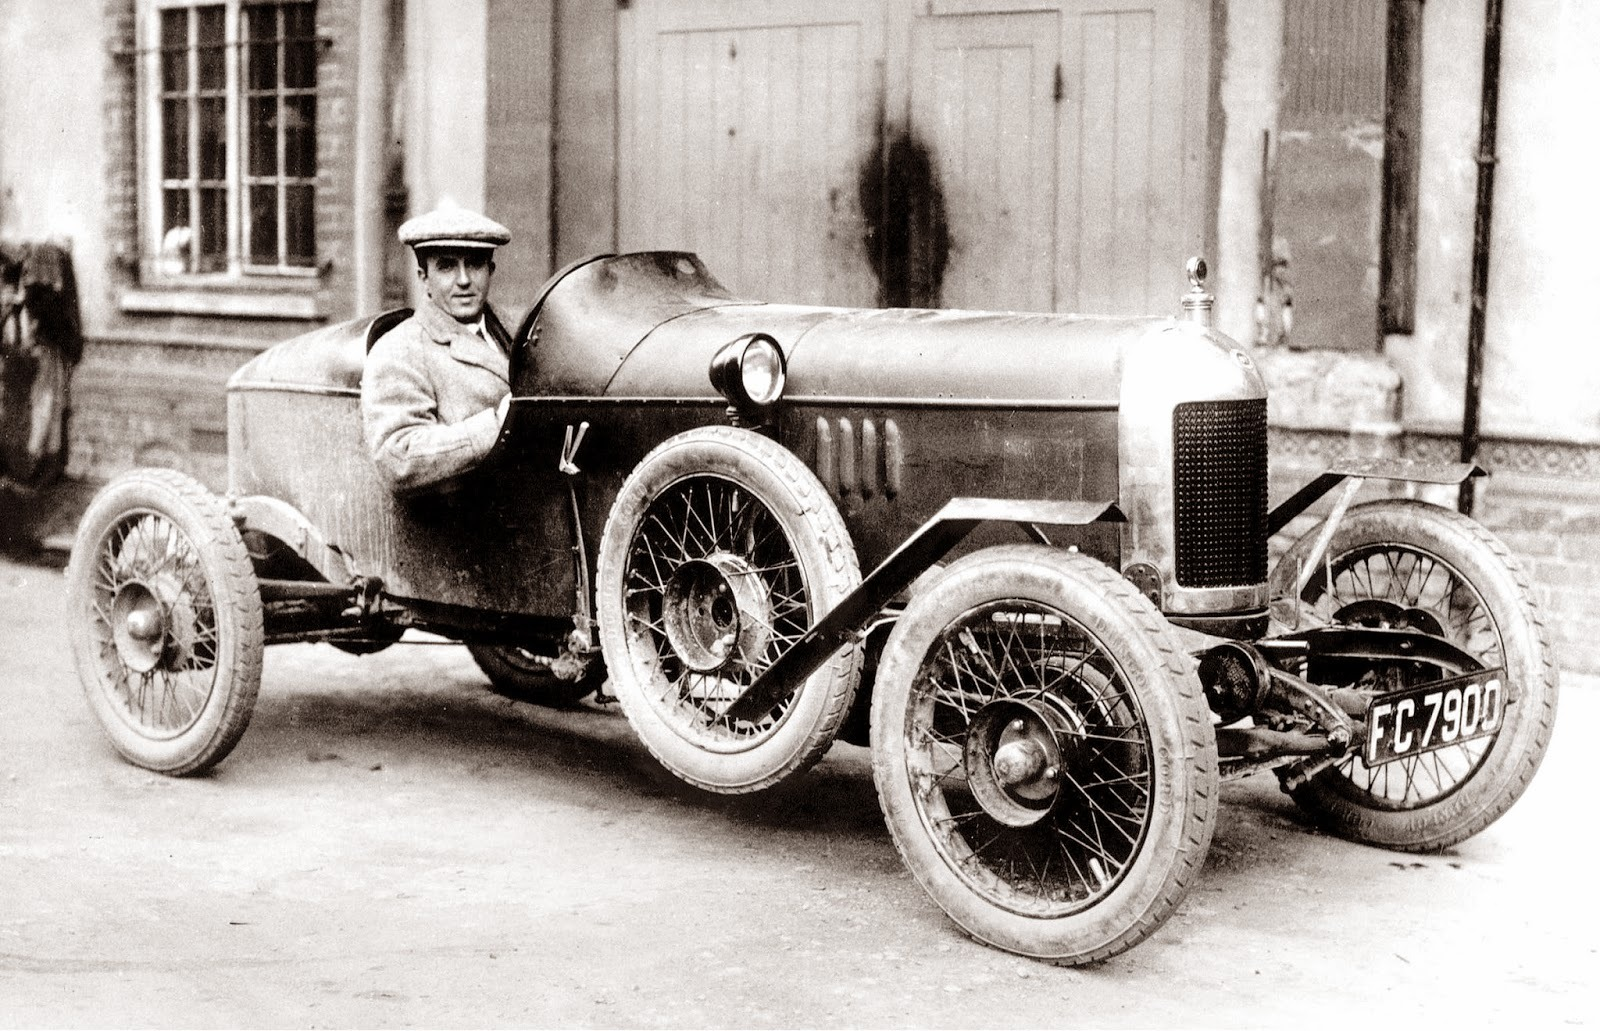 Cecil Kimber MG Old Number One